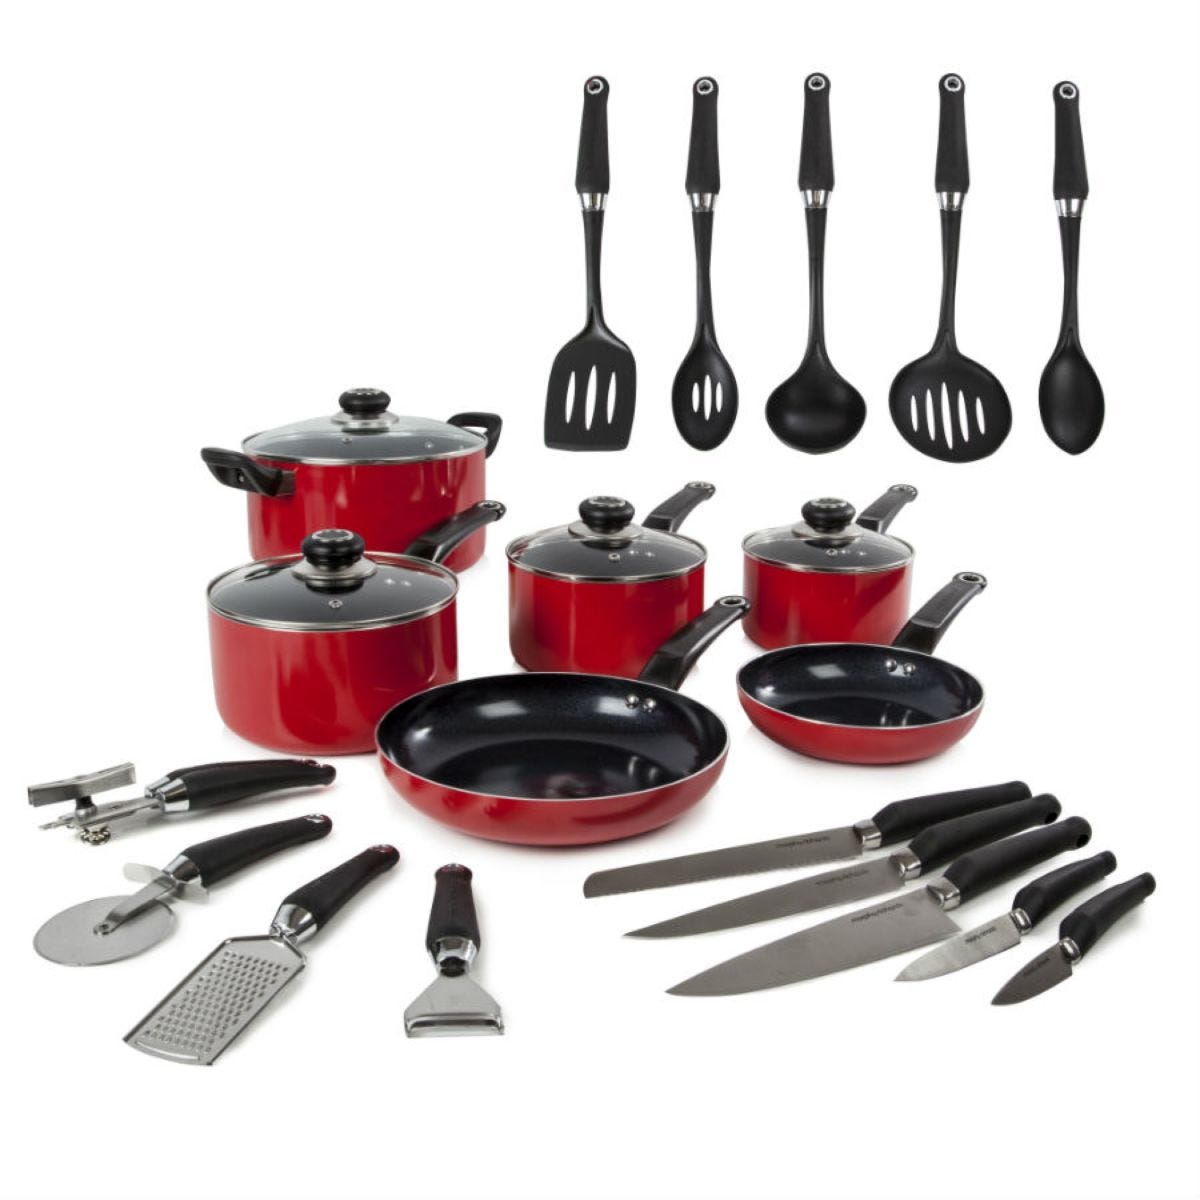 Morphy Richards 6-Piece Non-Stick Pan Set with 5 Knives and 4 Tools - Red